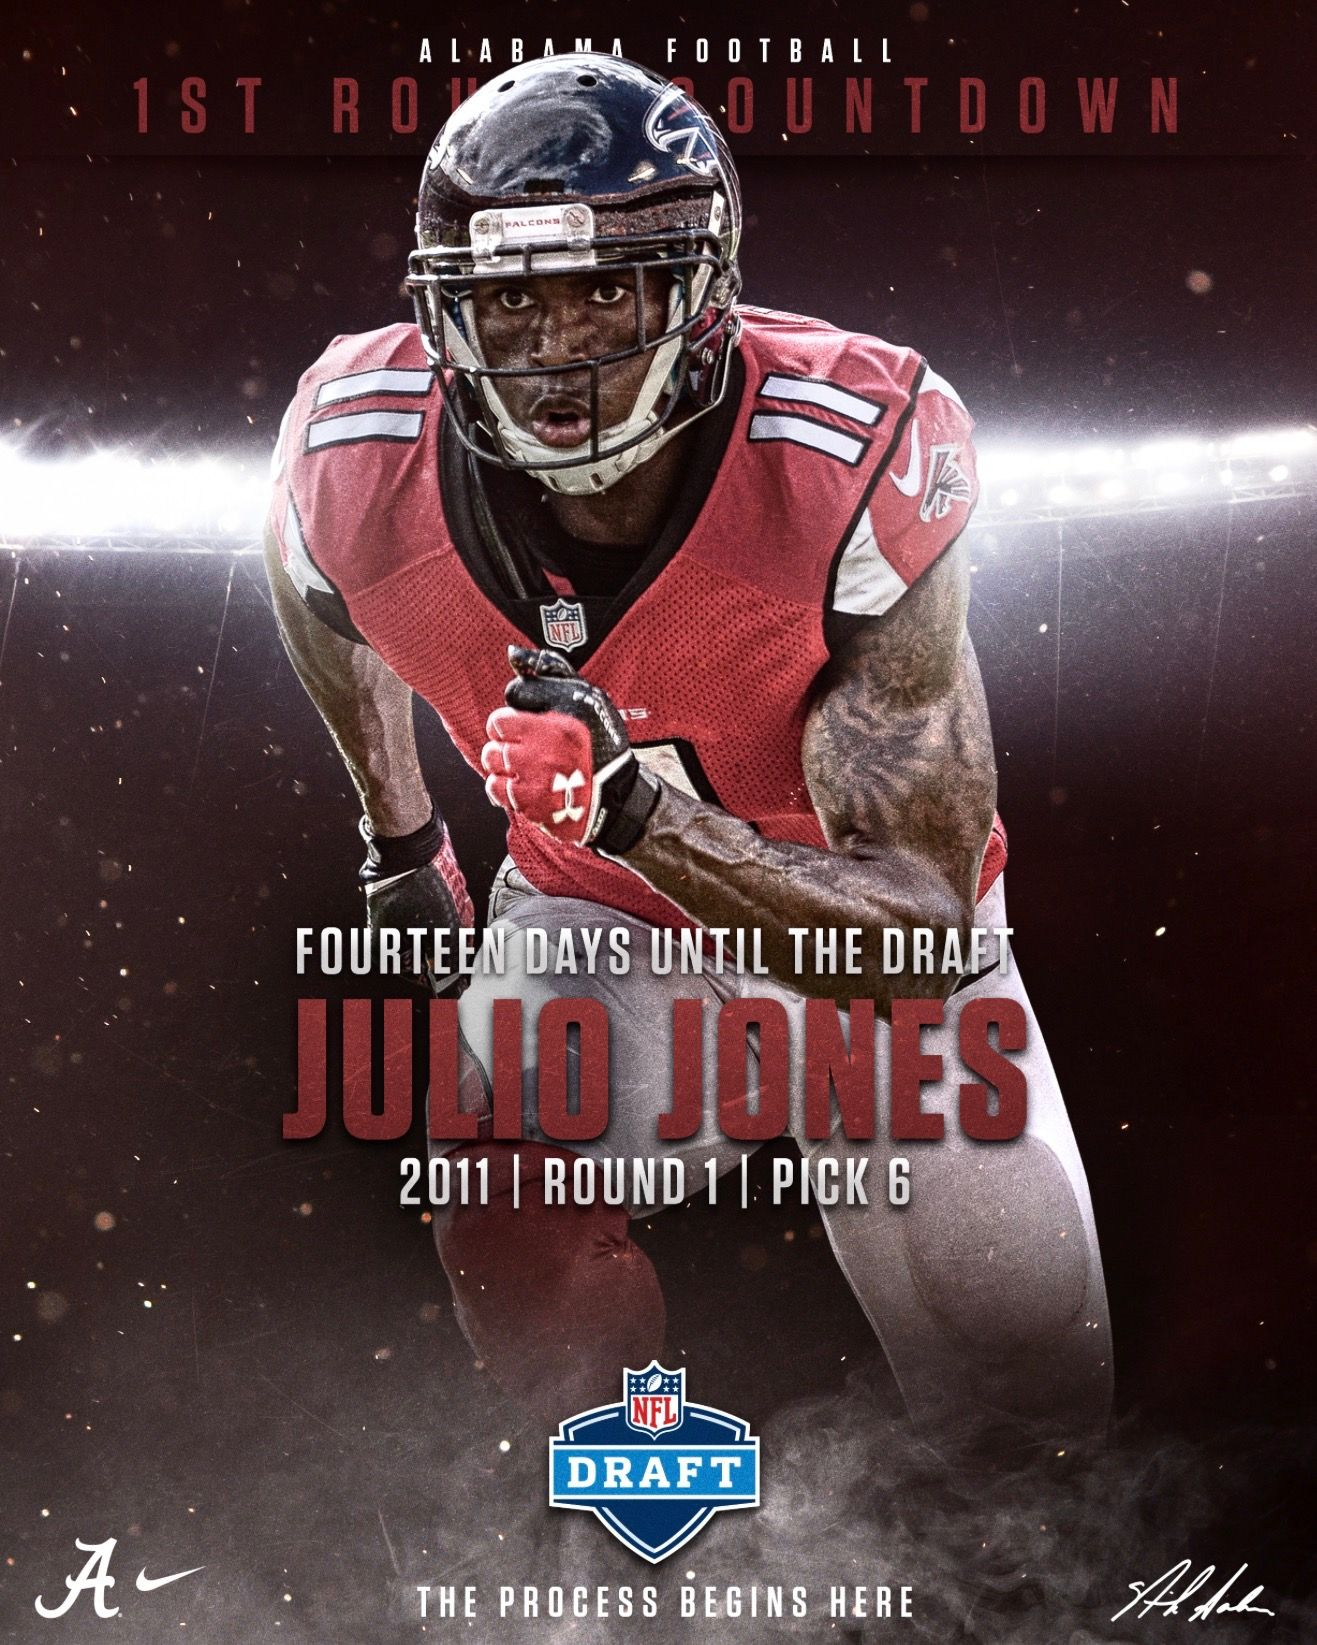 Julio Jones Nfl First Round Countdown On Behance Highlighting Alabama S 1st Round Nfl Heart Healthy Dinners Alabama Football Chocolate Truffles Recipe Easy